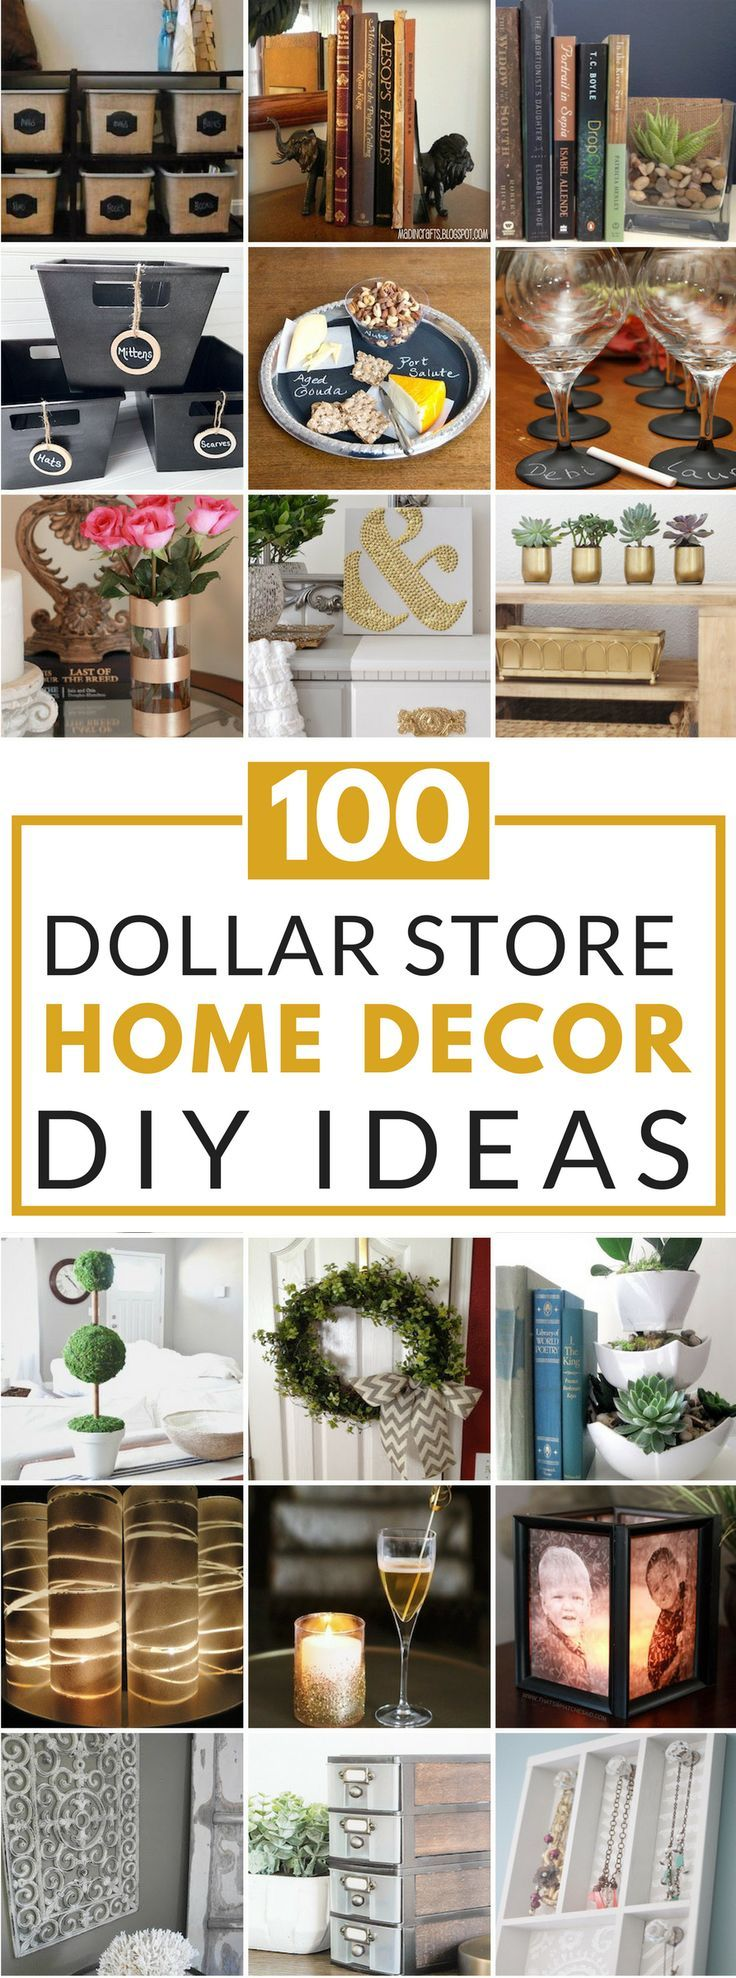 100 dollar store diy home decor ideas | dollar stores and store